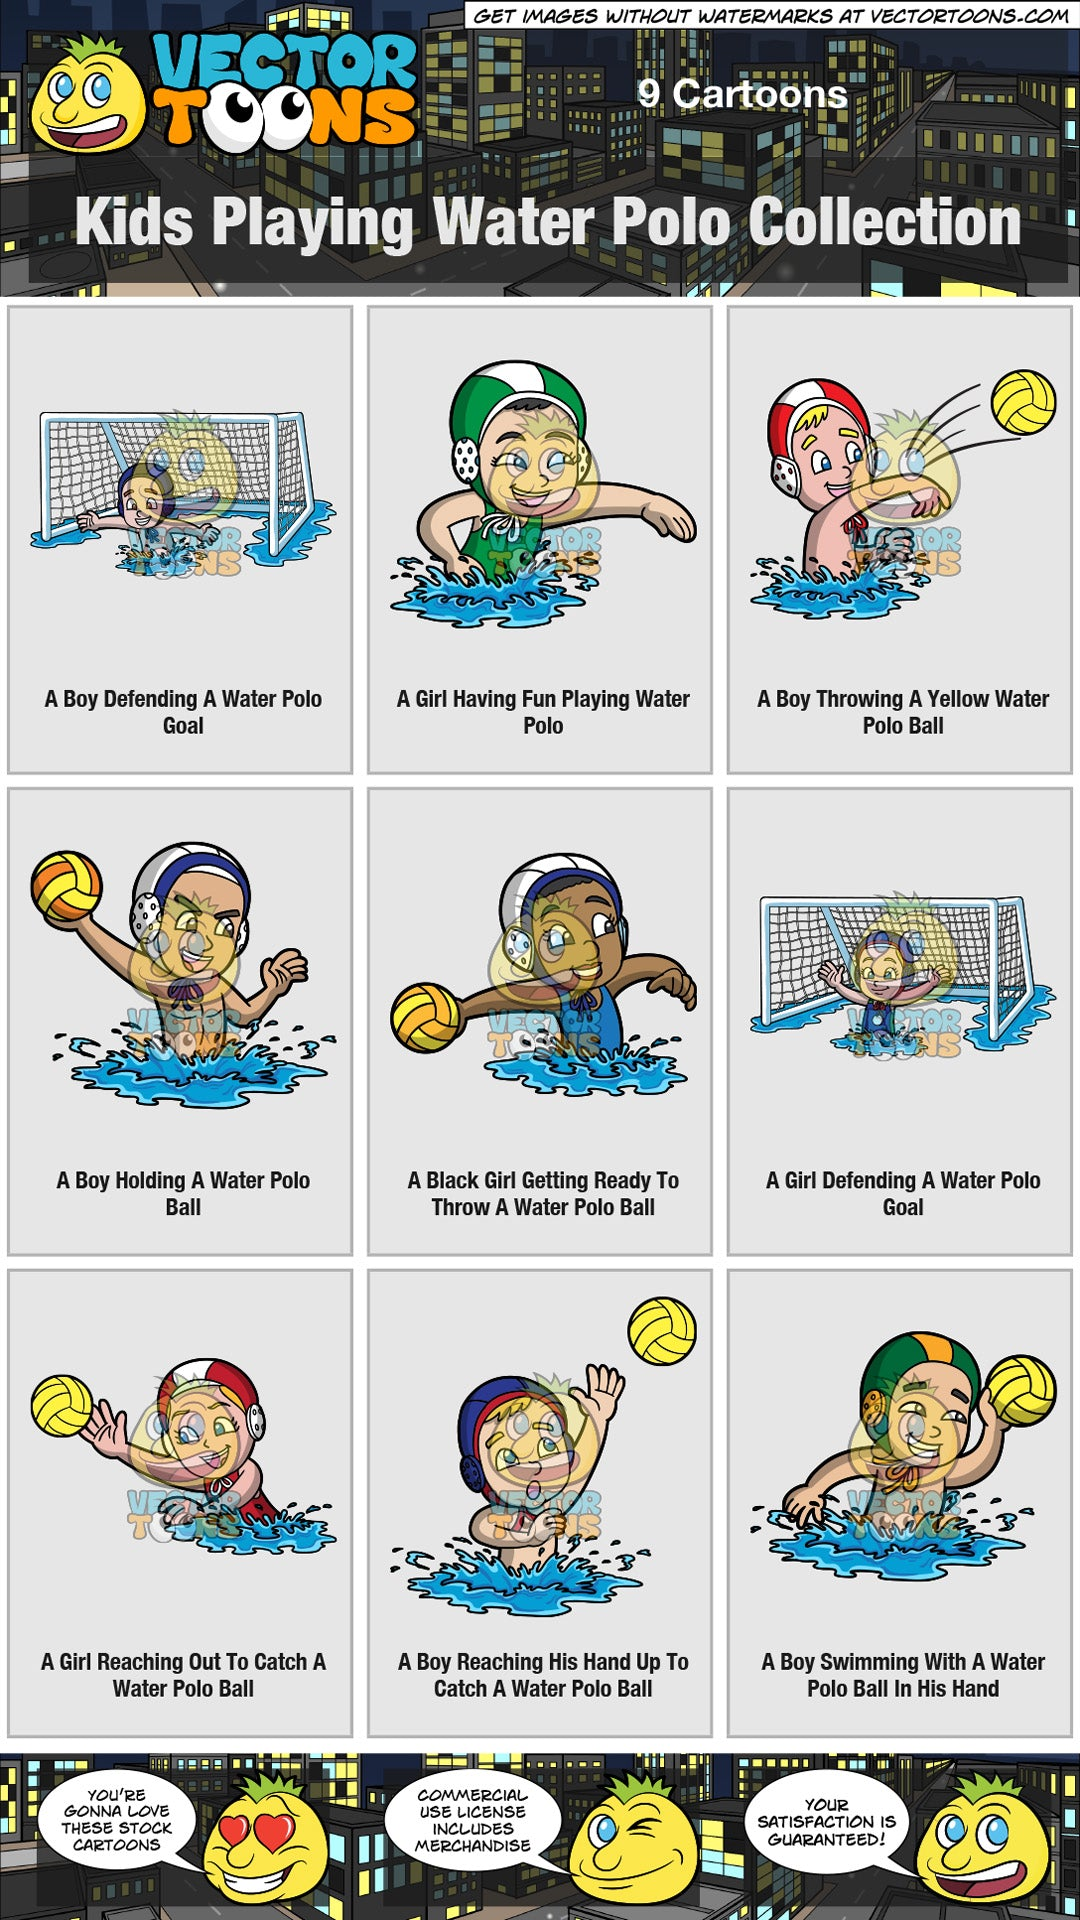 Kids Playing Water Polo Collection